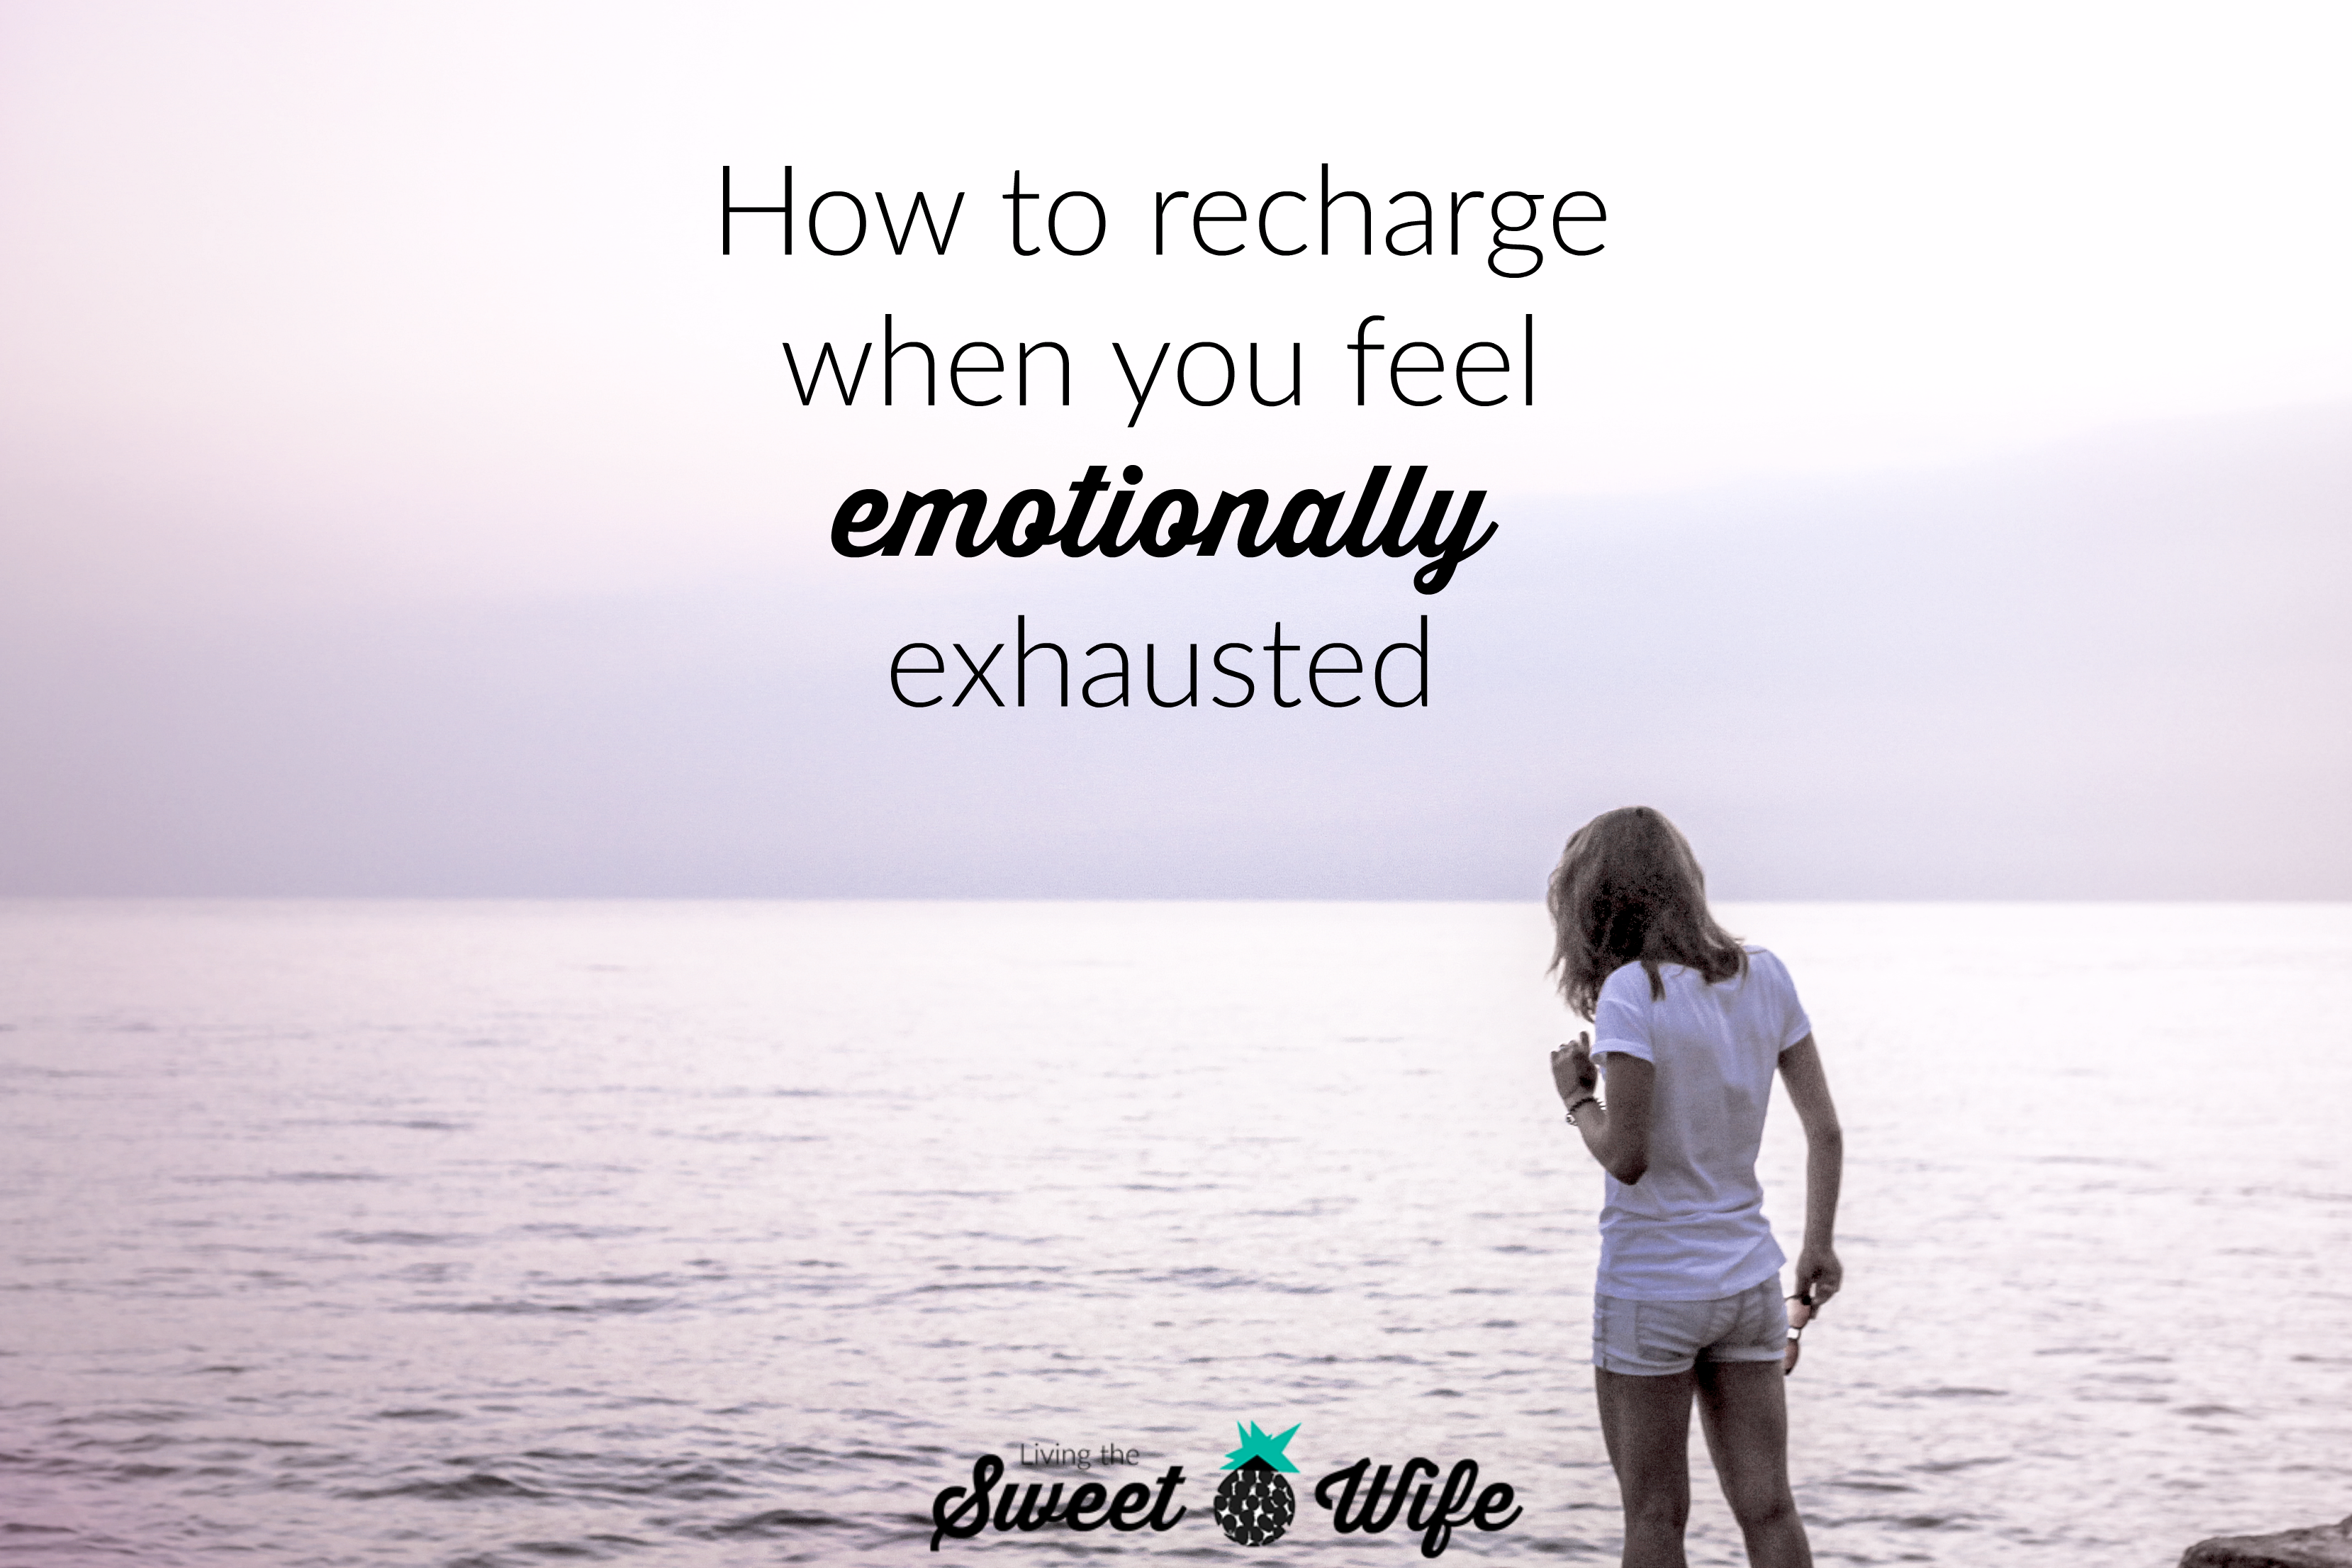 Have you ever been to the point of emotional exhaustion where you literally stop feeling feelings for a while? Whether voluntary or not, the numbness of emotional exhaustion is not fun- or healthy- for long periods of time. Here are some tips I've compiled to help you get a head start back to an emotionally healthy, energized, and renewed state.